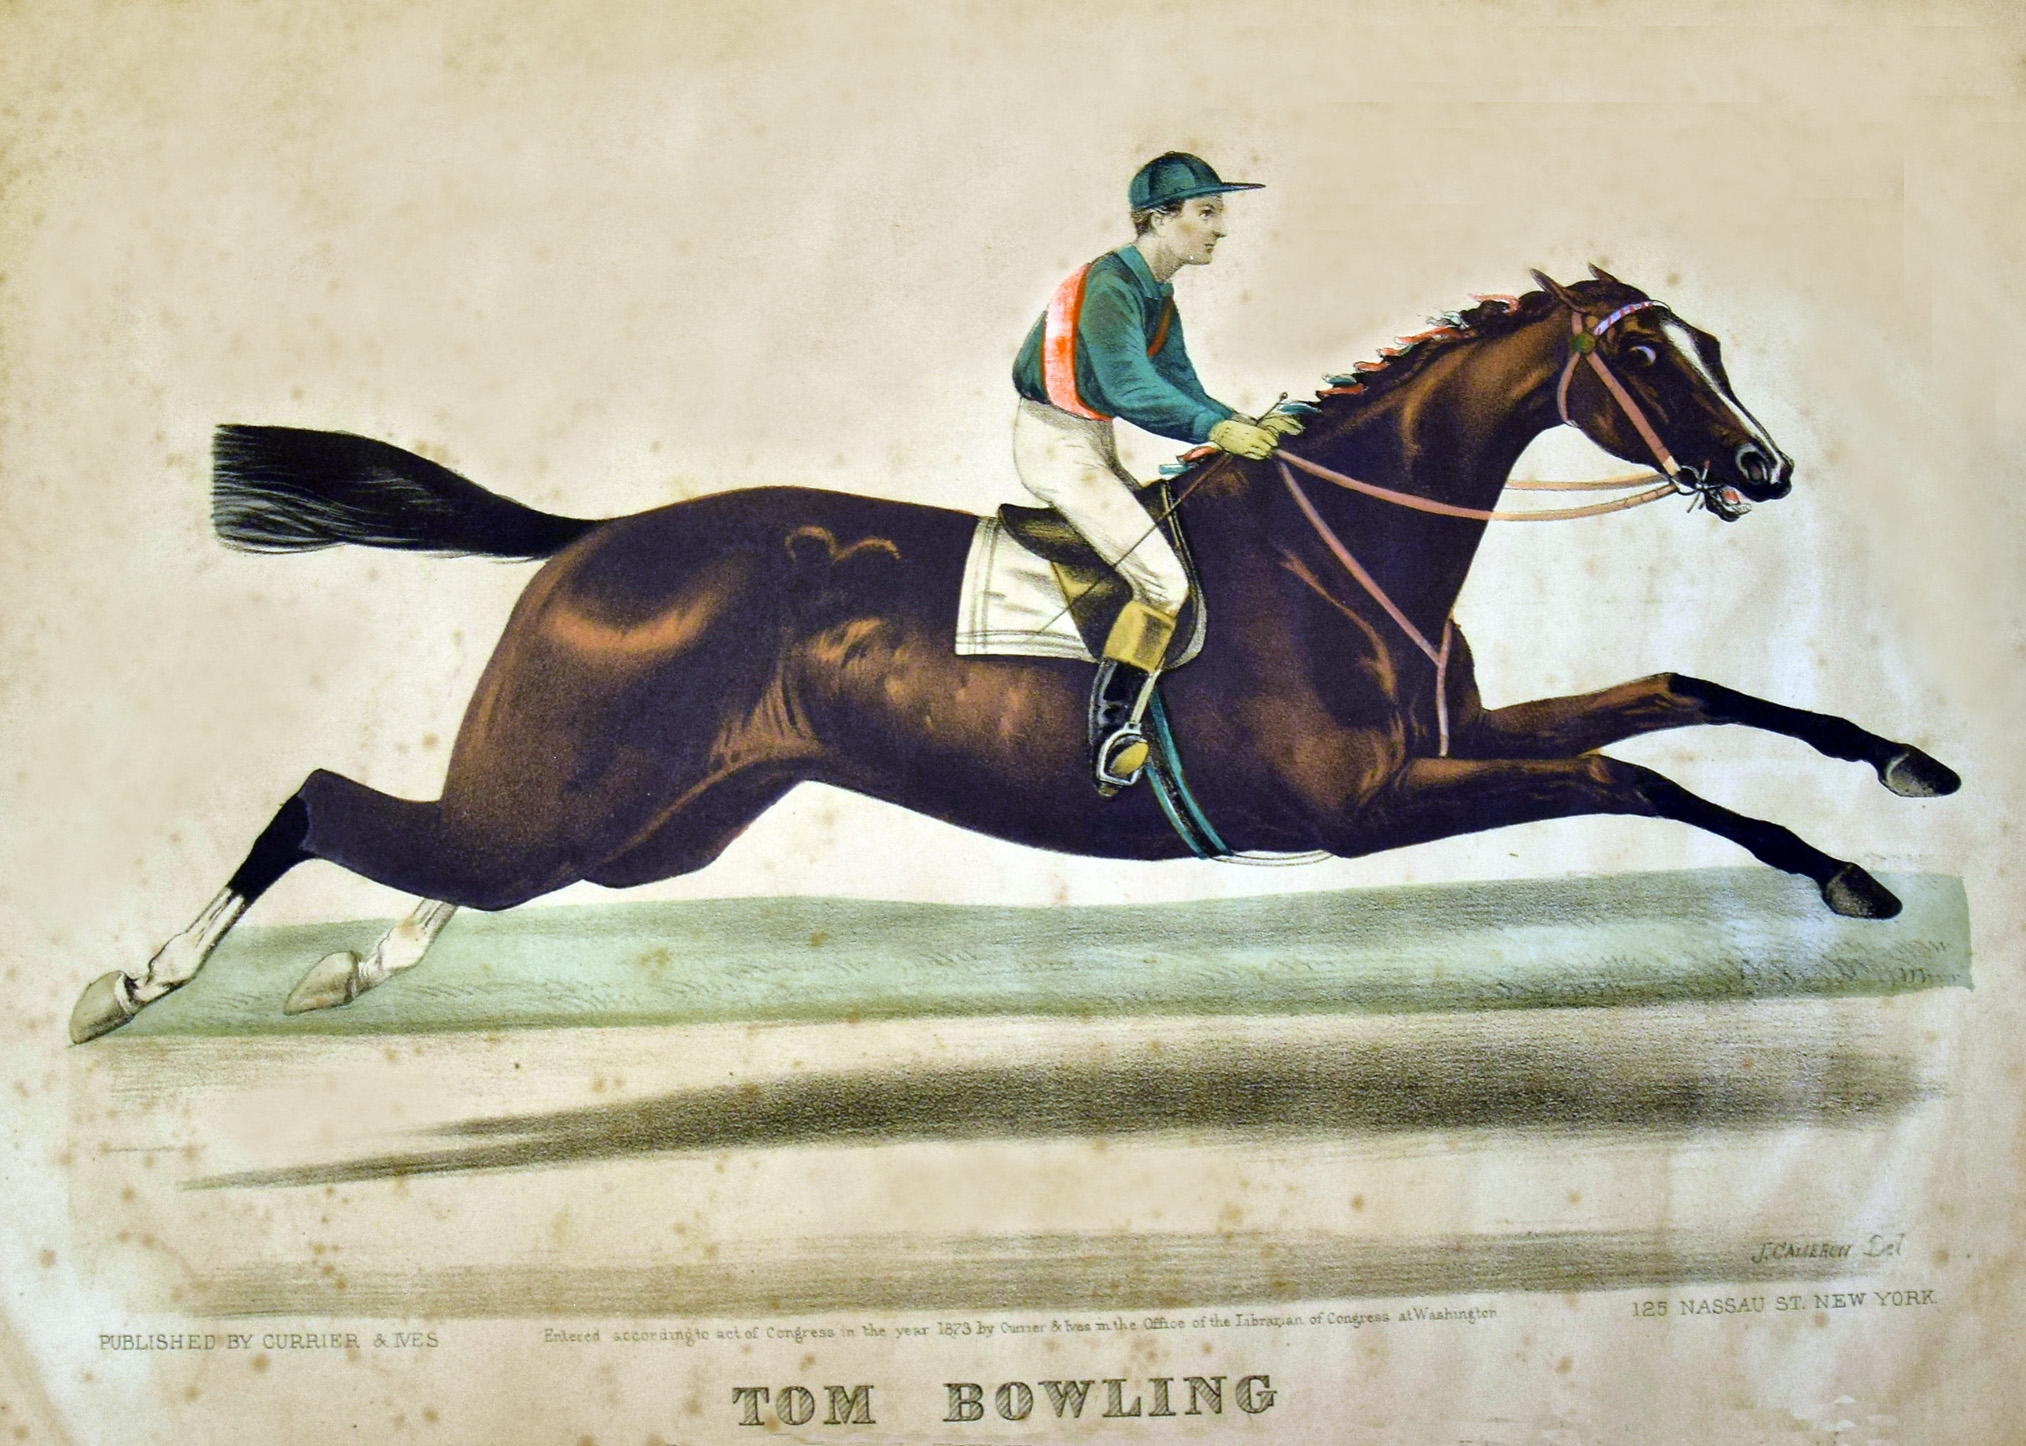 1873 Currier & Ives print of Tom Bowling (Museum Collection)